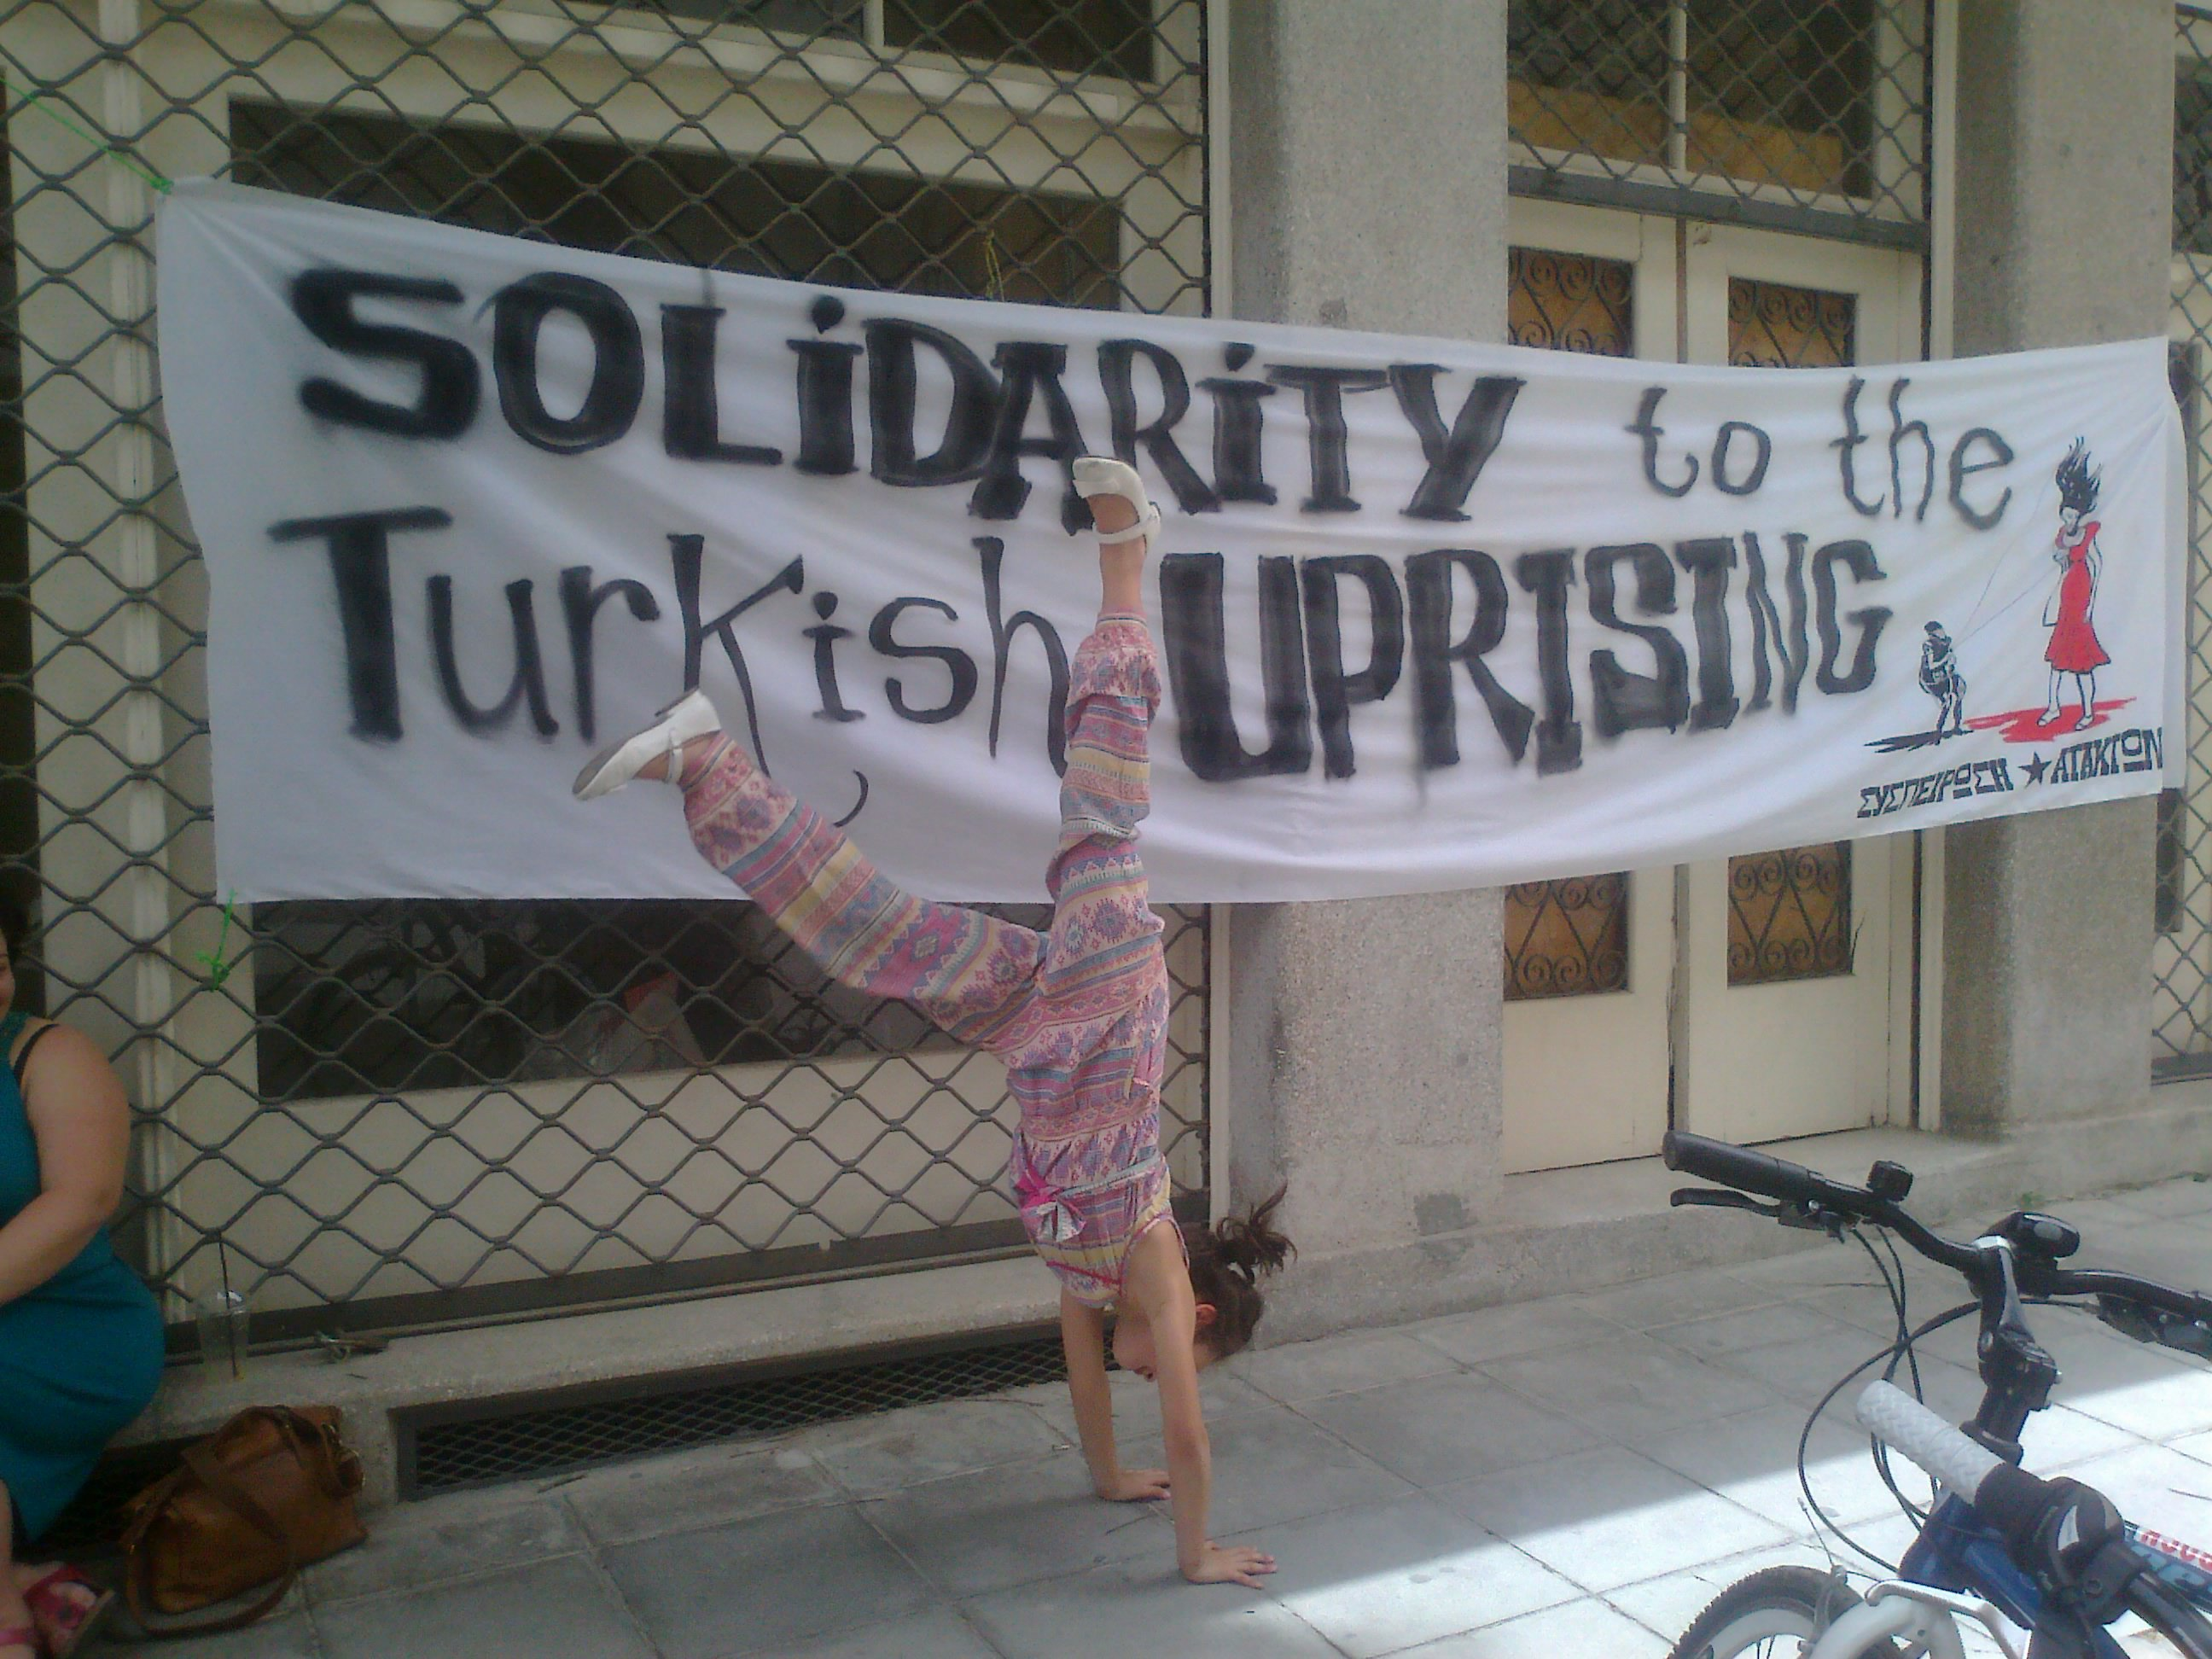 solidary to the Turkish upring